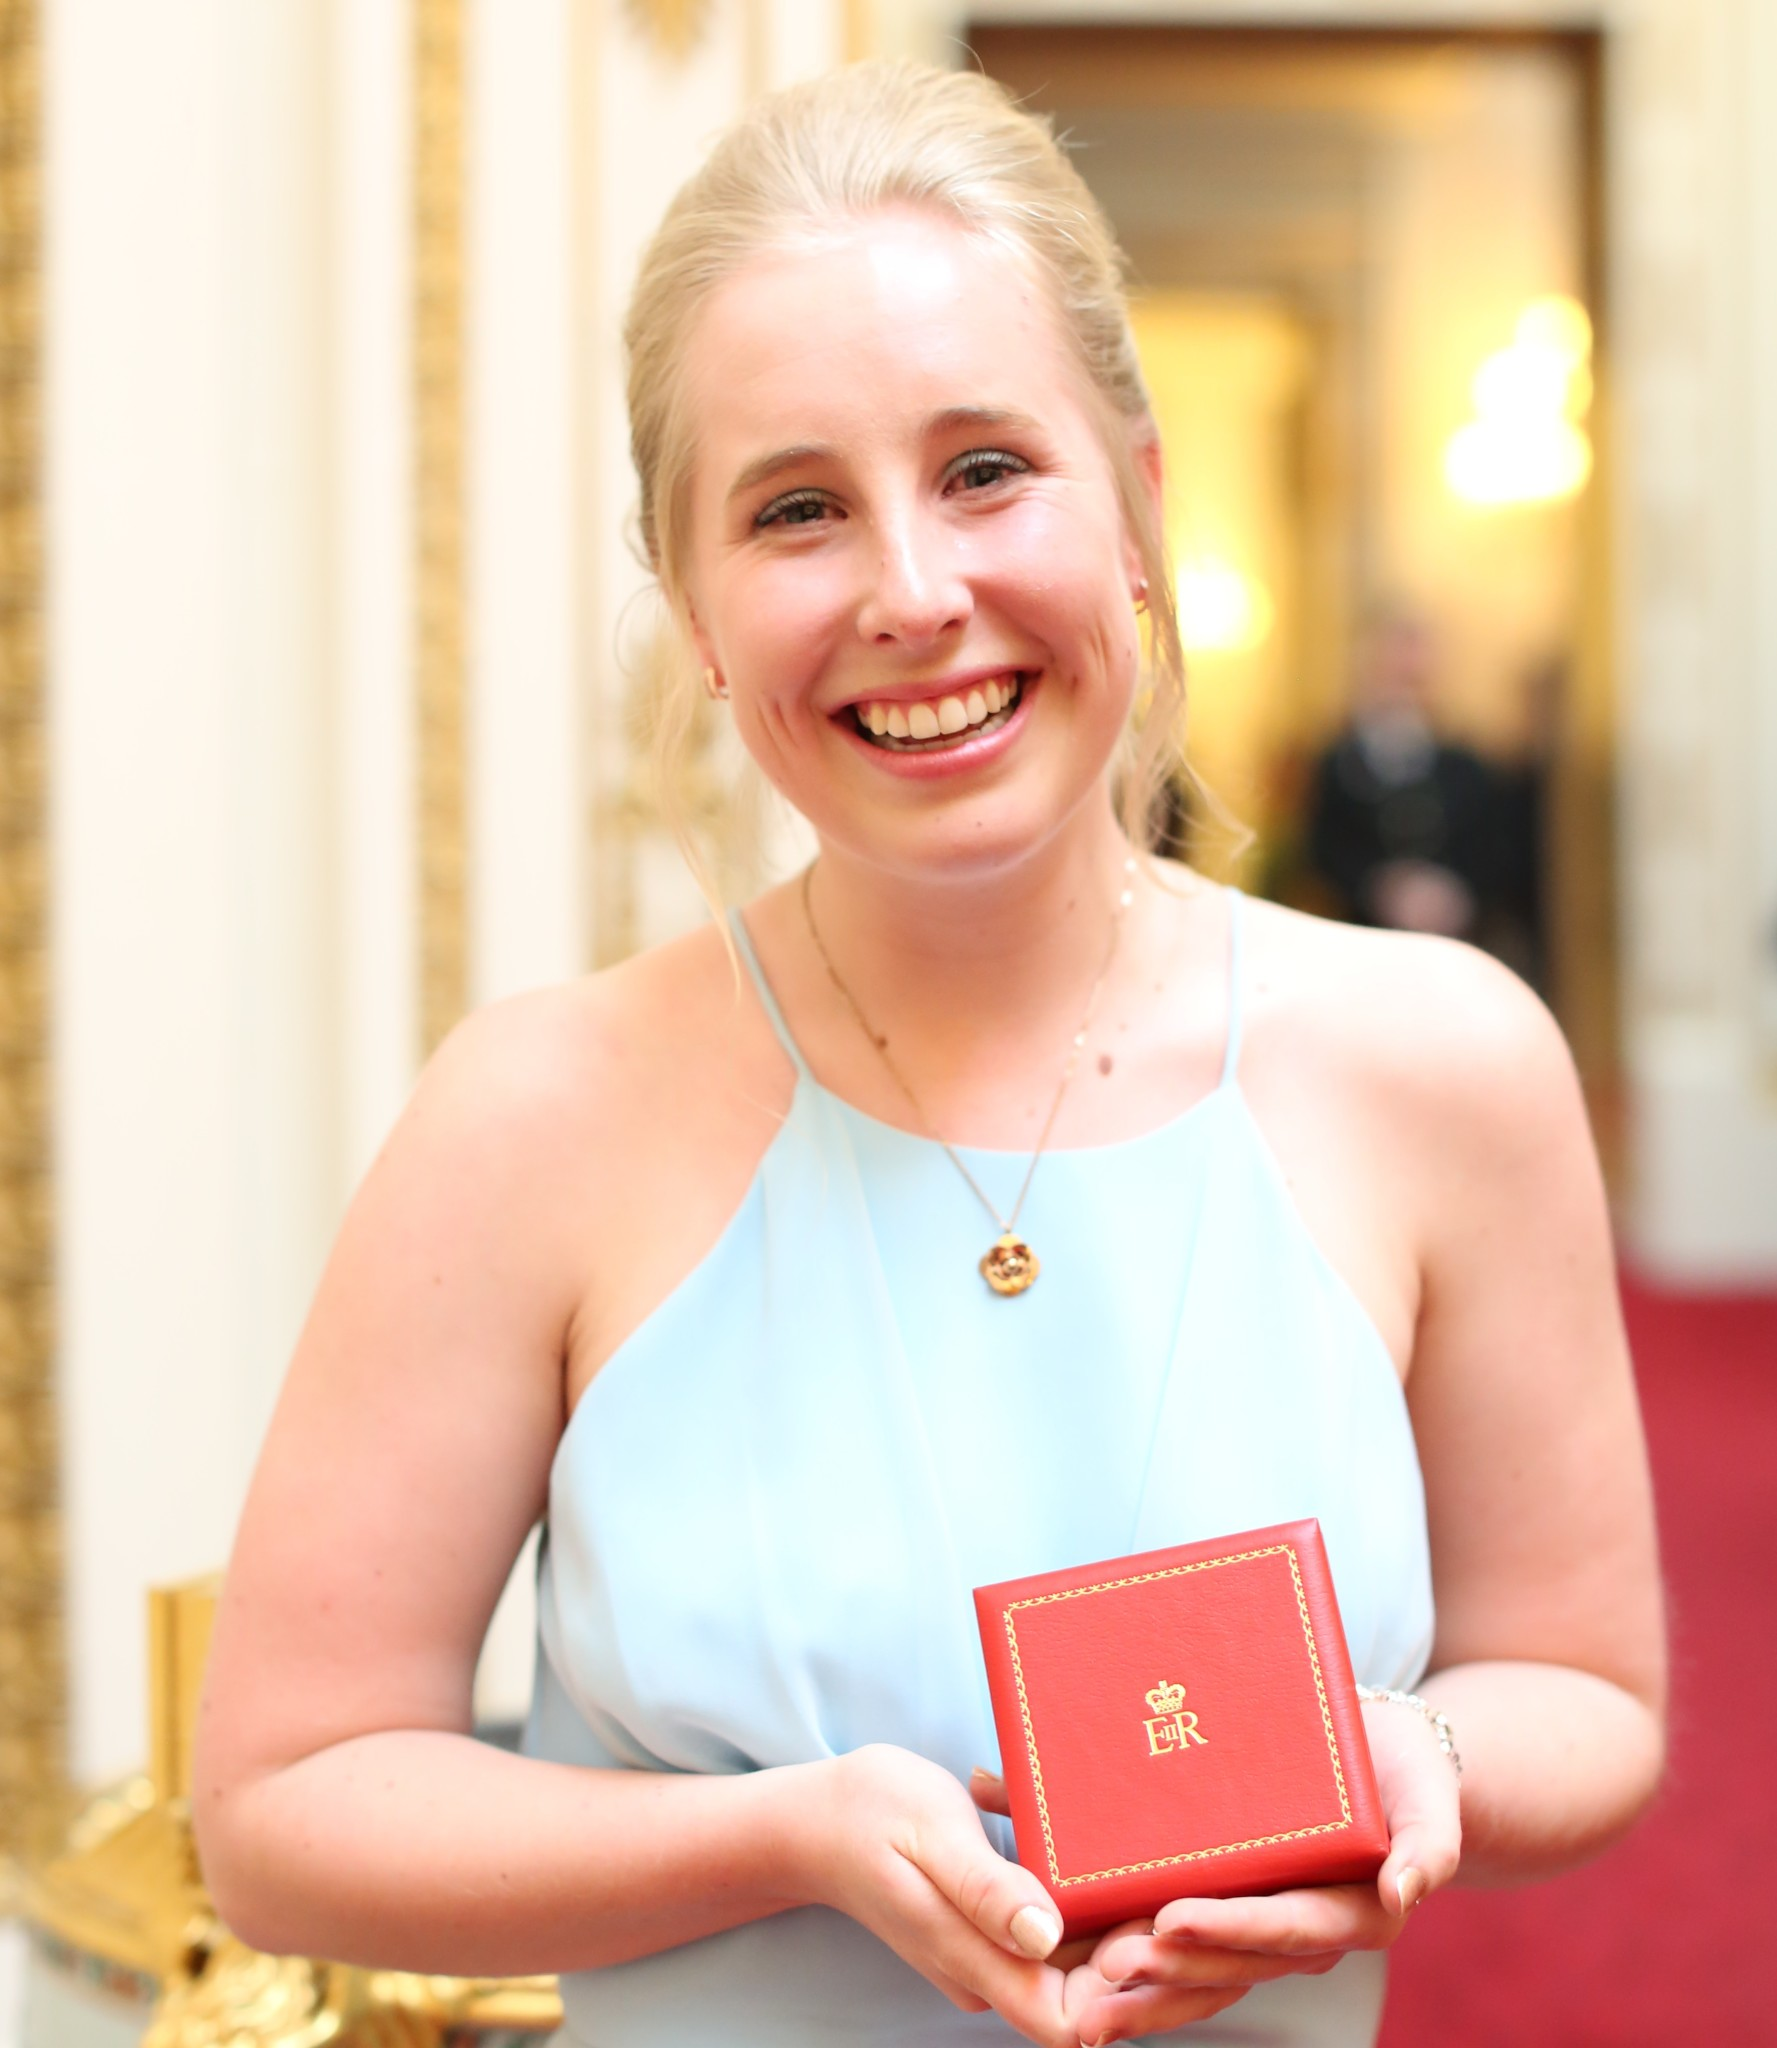 The 2017 Queen's Young Leaders recieve their award from her majesty the Queen at Buckingham Palace.